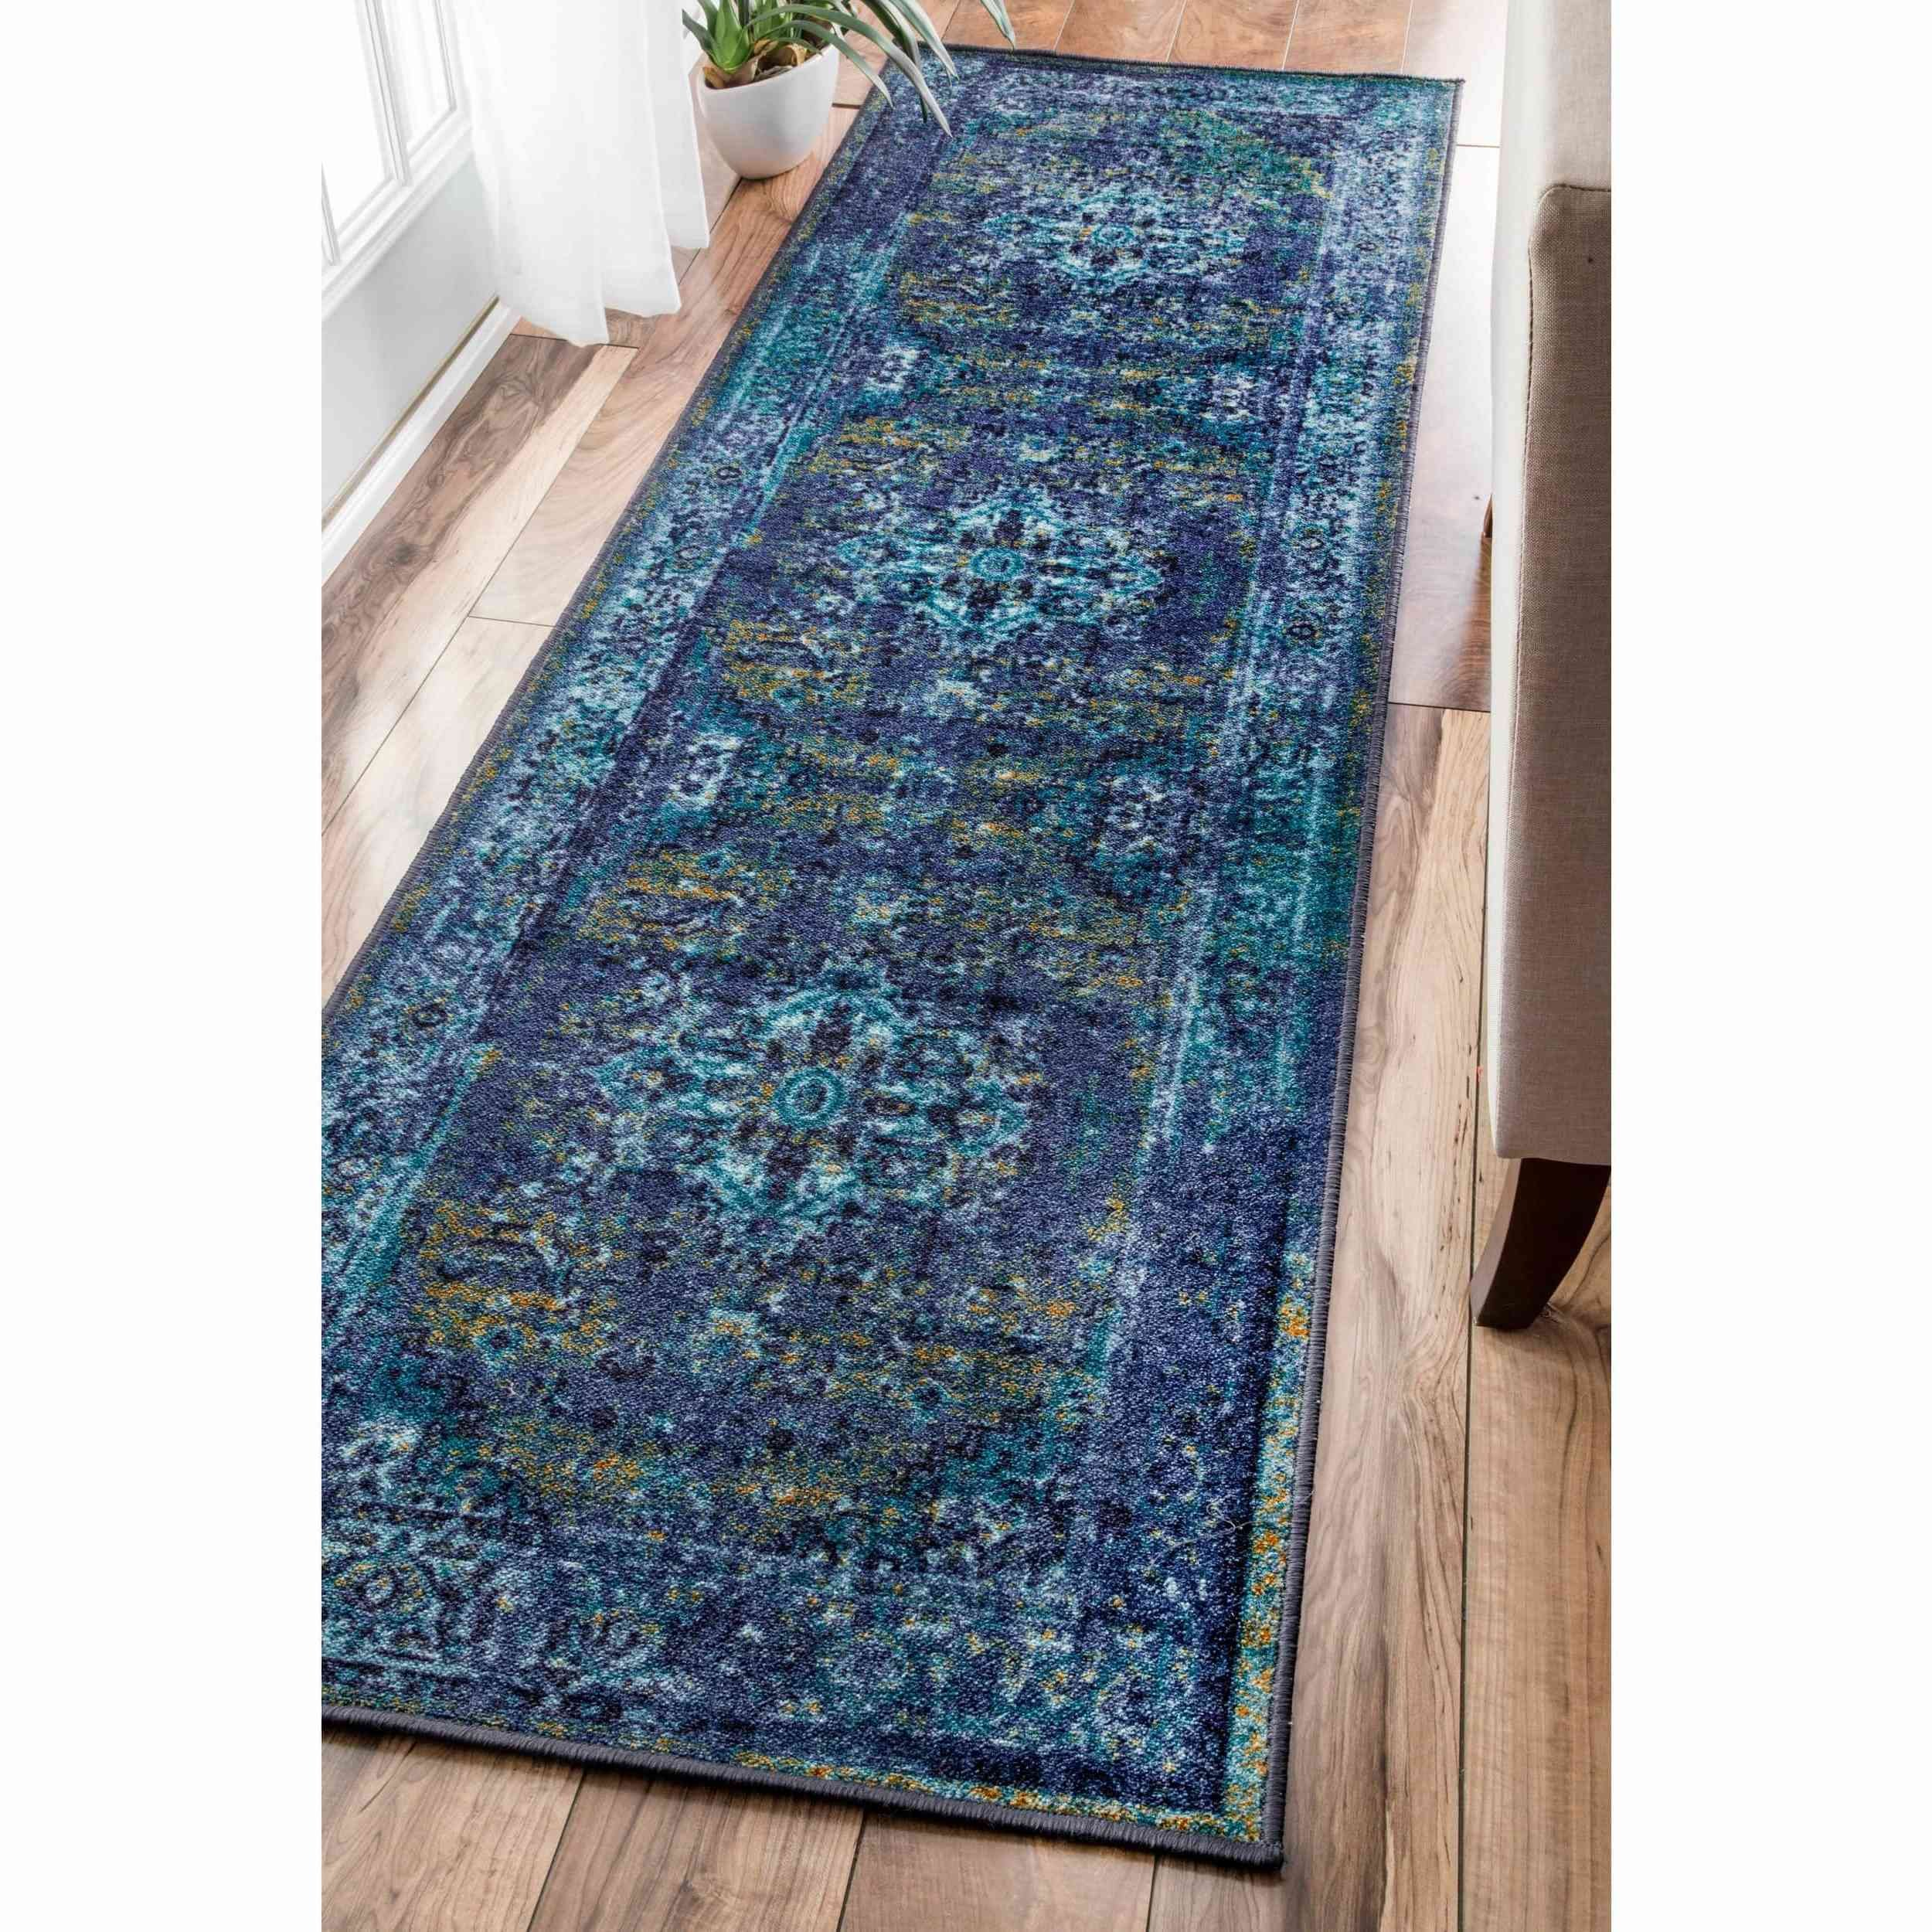 un 2'6 x 8'6 Oriental Bohemian Floral Overdyed Patterned Abstract Teal Blue Multi Runner Rug, Soft Polypropylene Fancy Country Northern Ocean Water Color, Rectangle Living Room Kitchen Accent Carpet